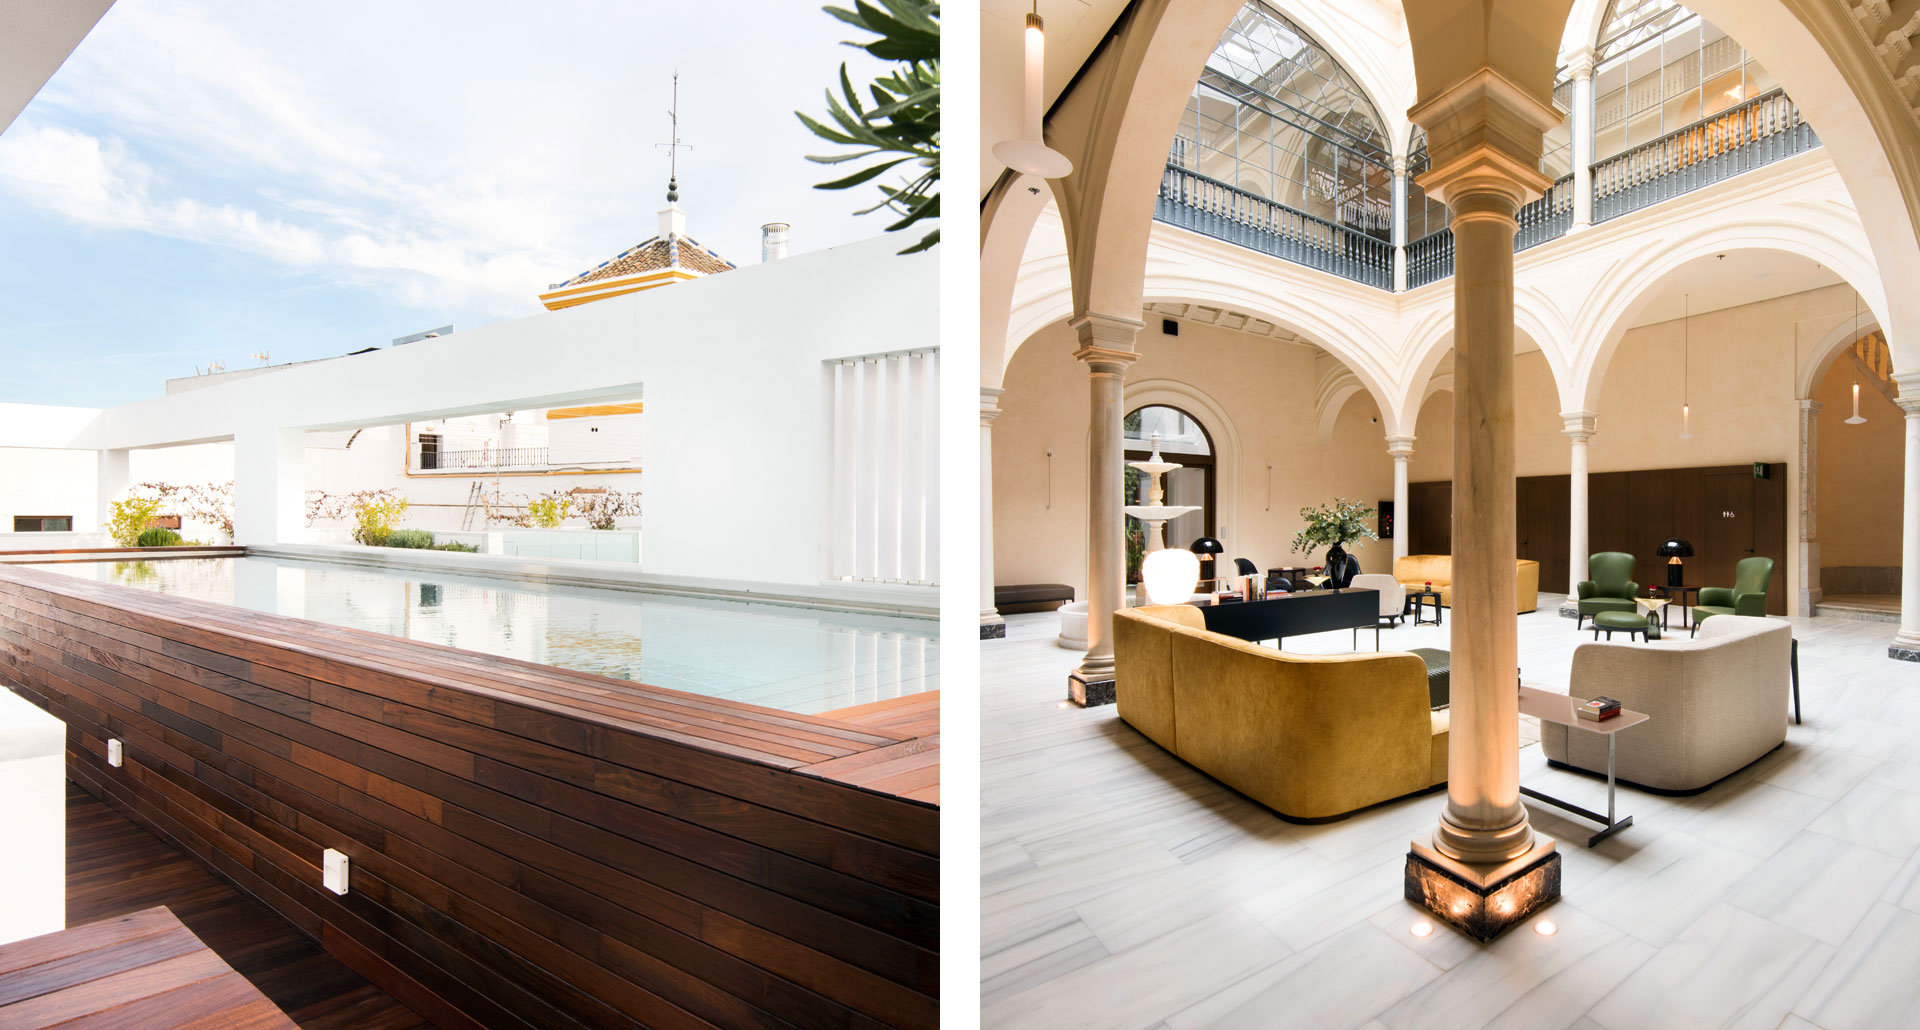 Hotel Mercer Sevilla - boutique hotel in Seville